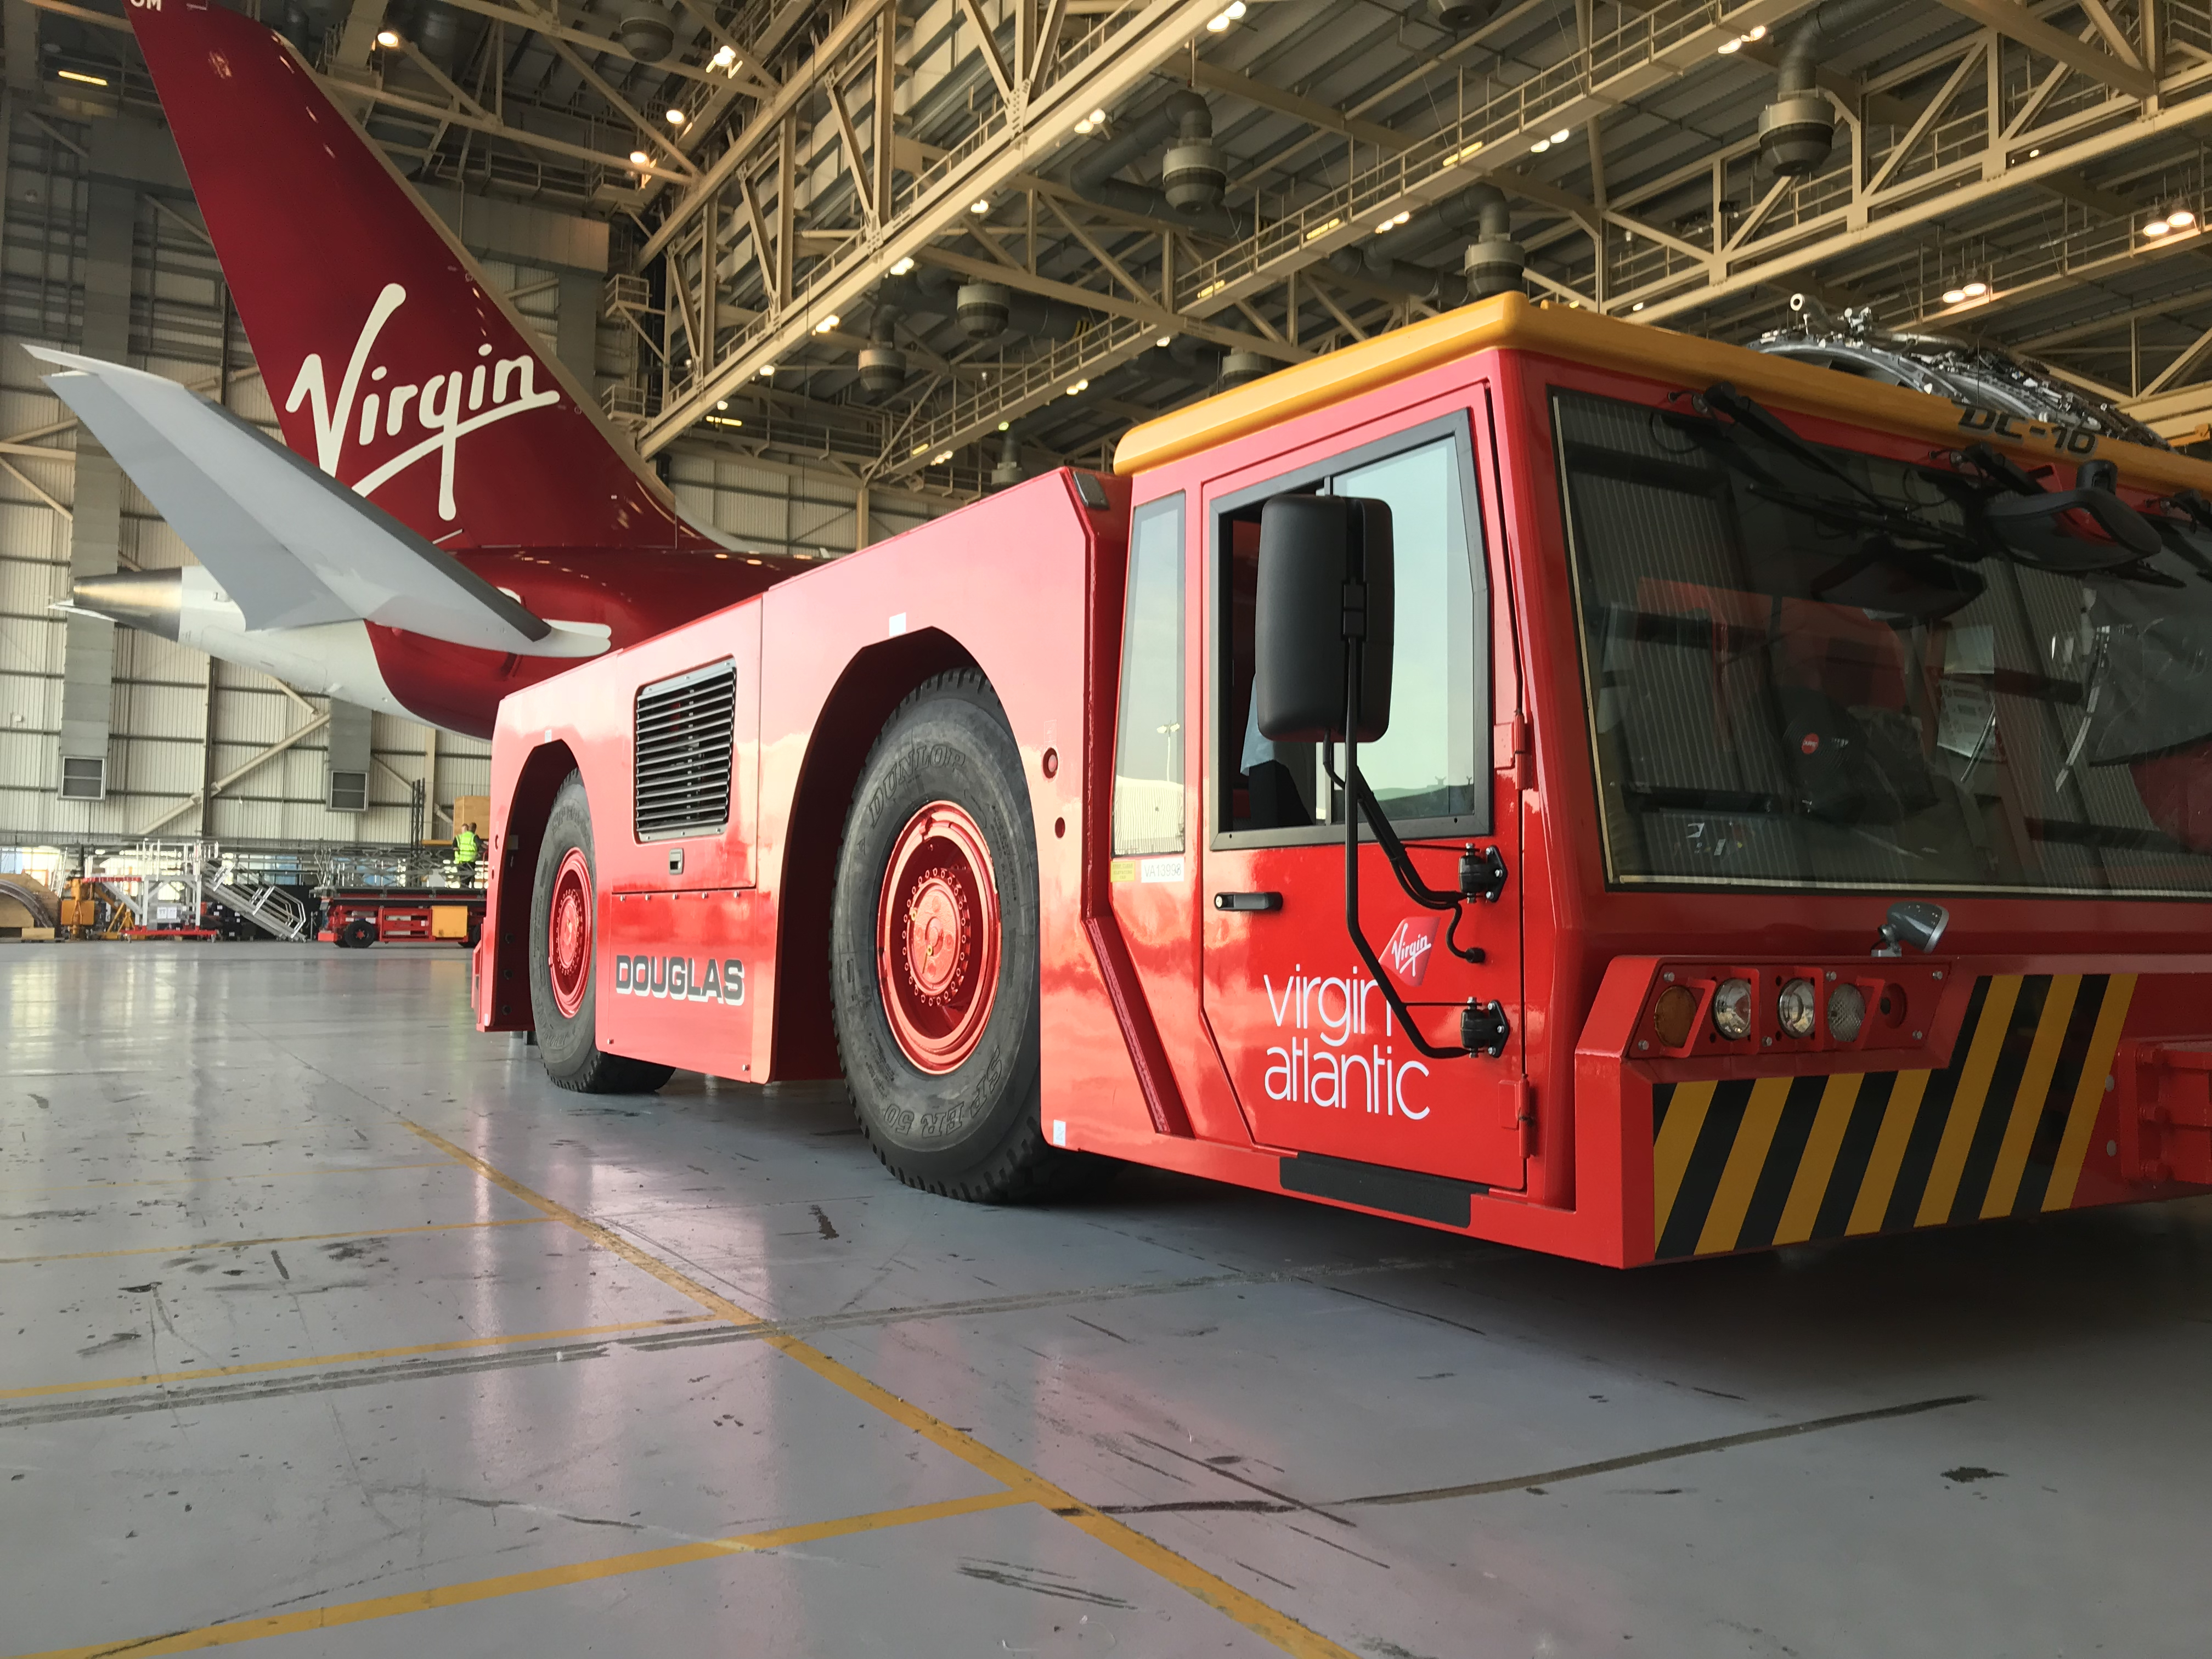 VIRGIN ATLANTIC TUG GRAPHICS